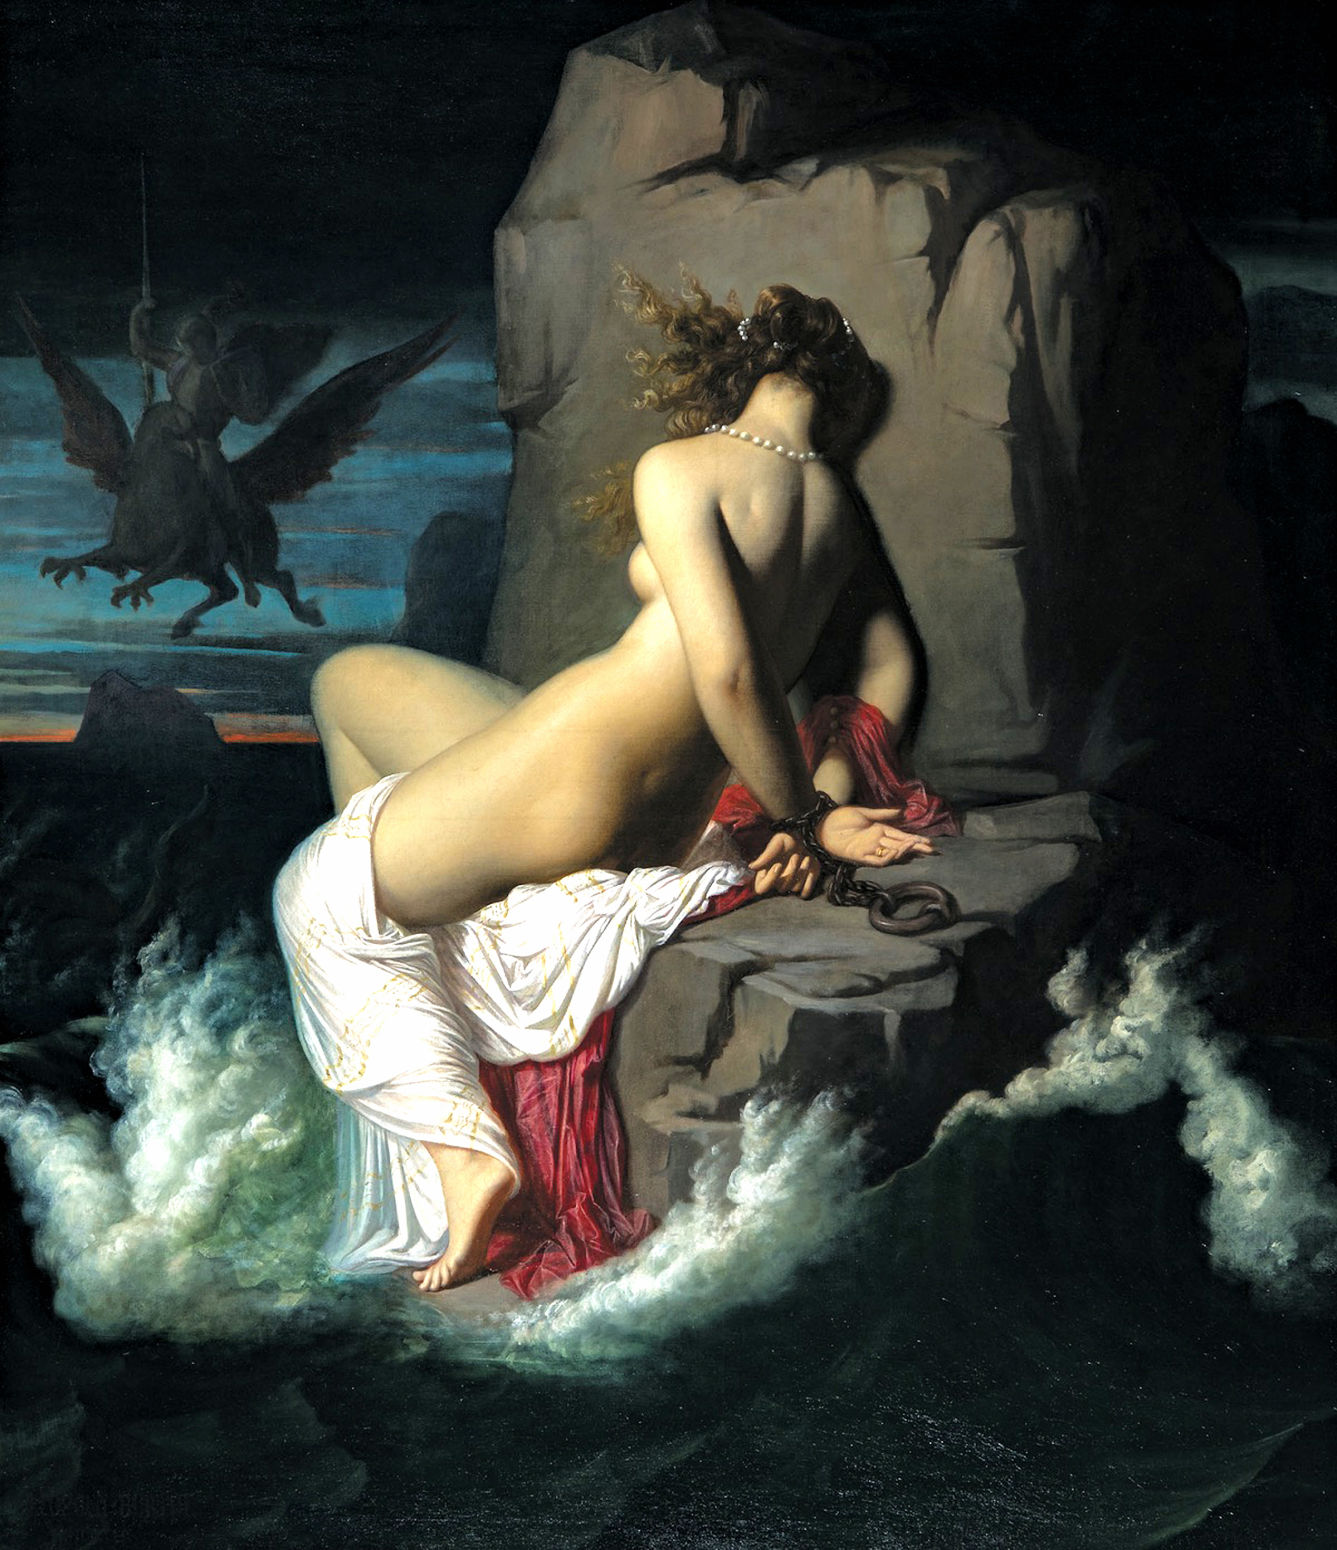 Leopold Burthe's painting infused with Ingres' influence 'Angelique' purchased by NOMA